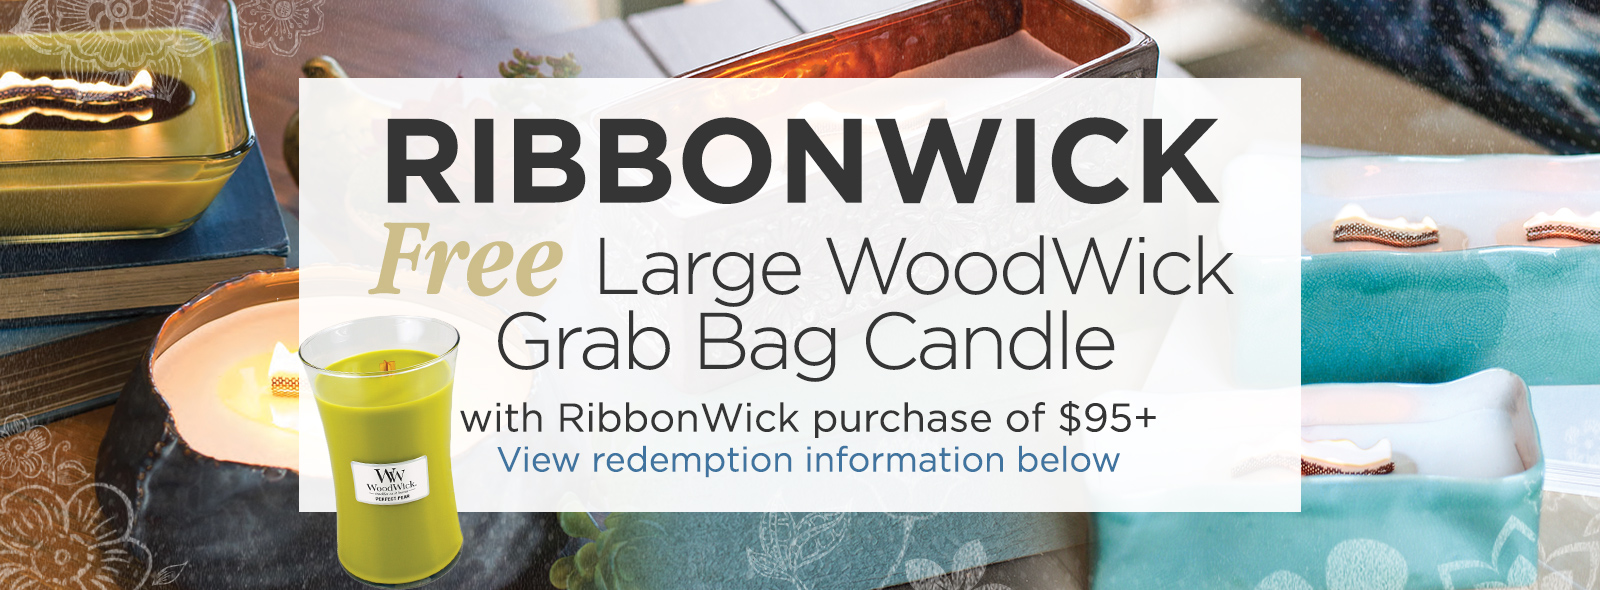 RibbonWick Candles